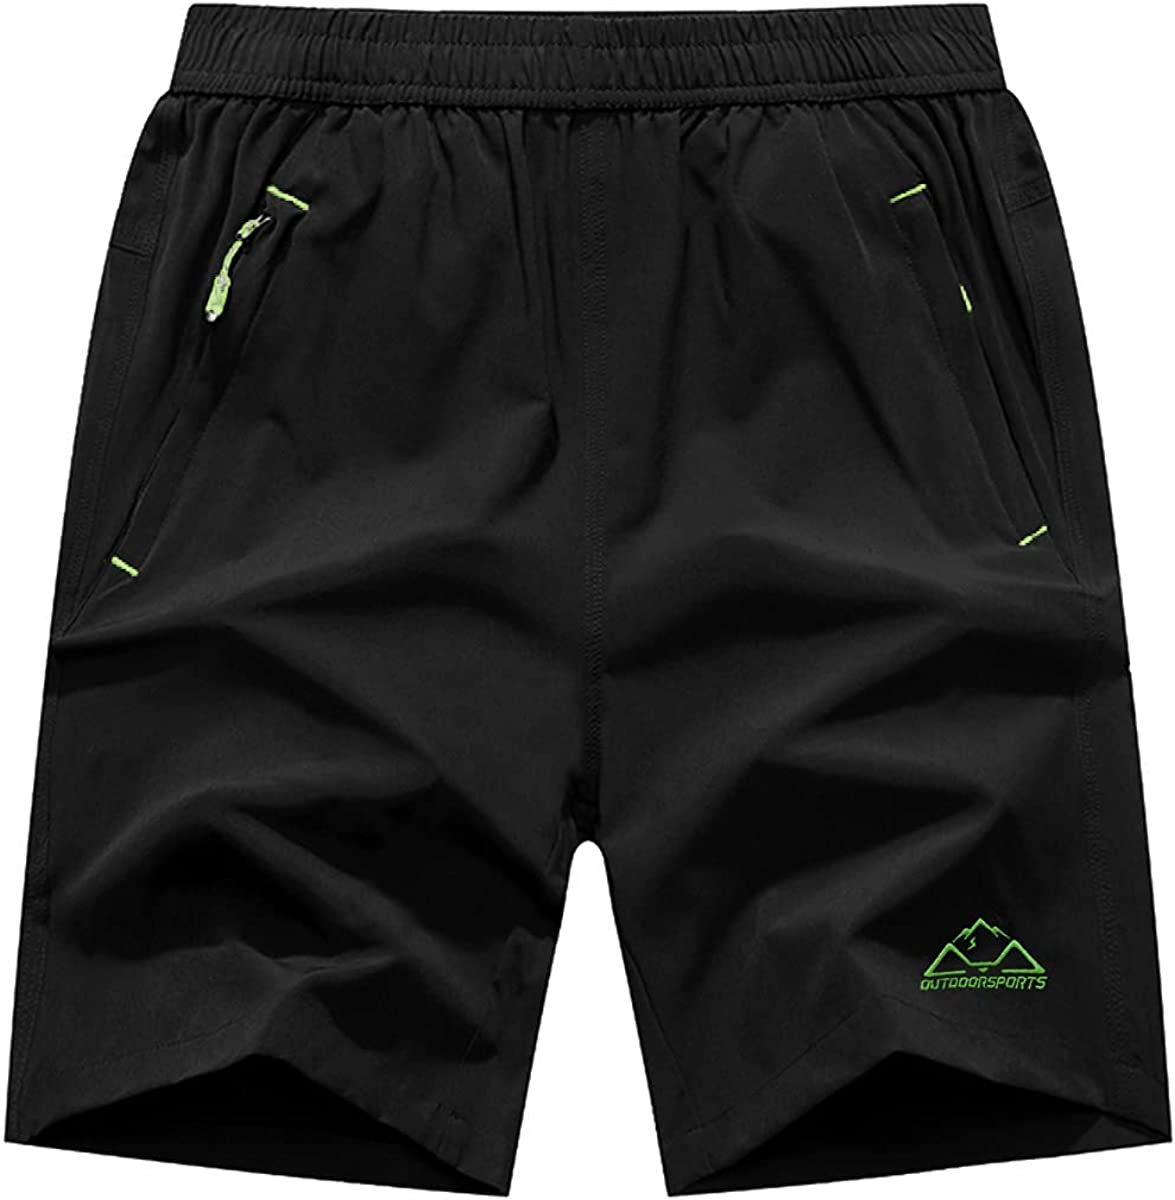 JHMORP Men's Workout Running Shorts Dry Lightweight Quick Fees free Athlet Large special price !!